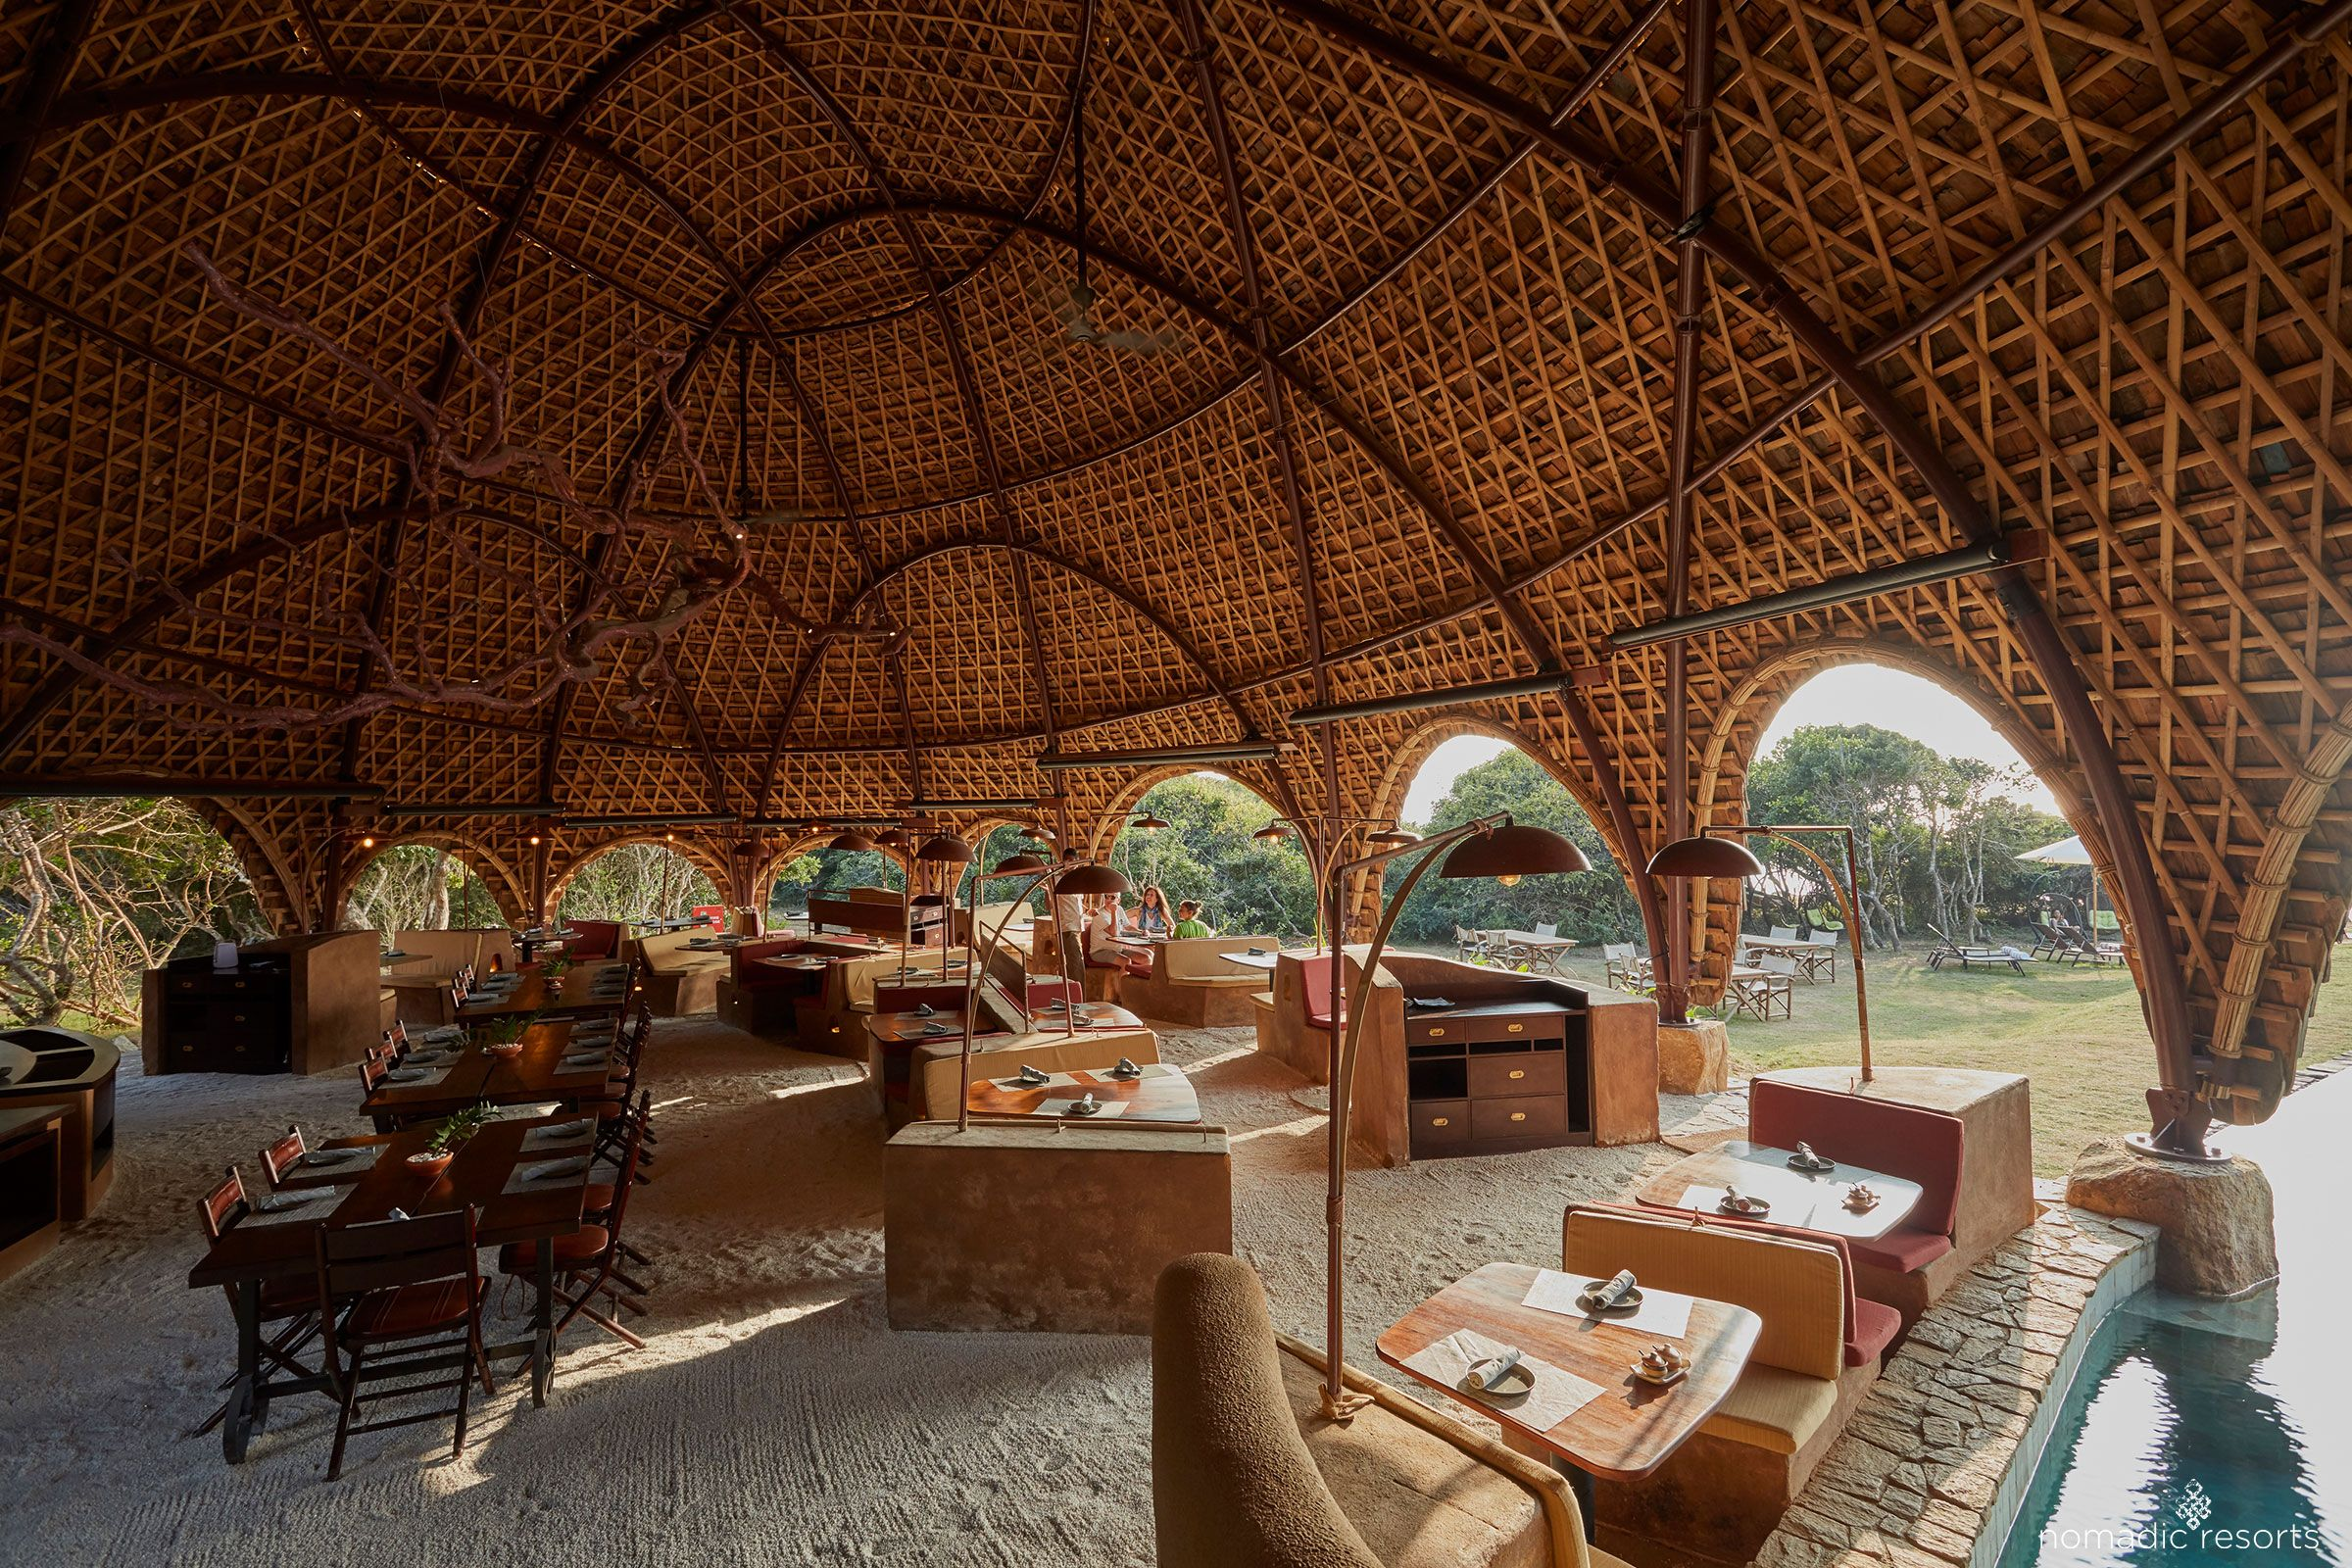 restaurant interior of wild coast tented lodge, yala national park, sri lanka